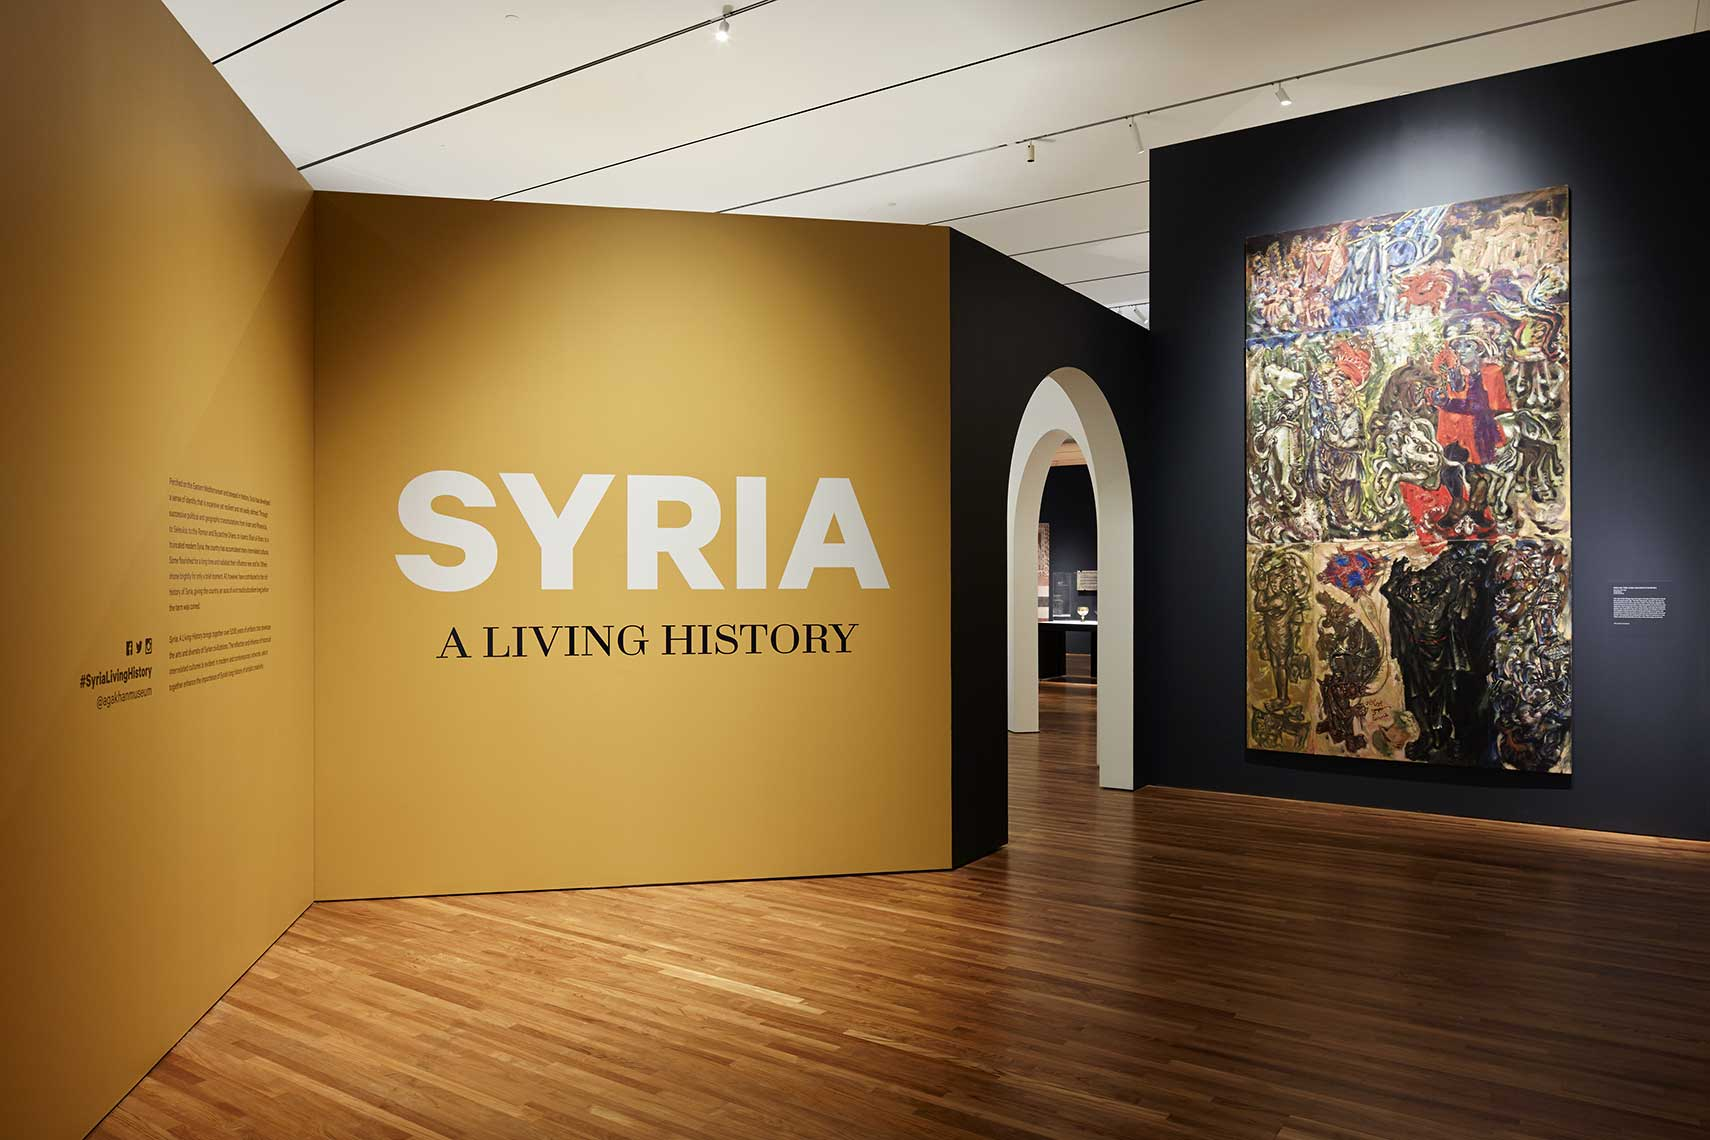 Aga-Khan-Museum-Syria-Exhibit-Toronto-Contemporary-Art-3